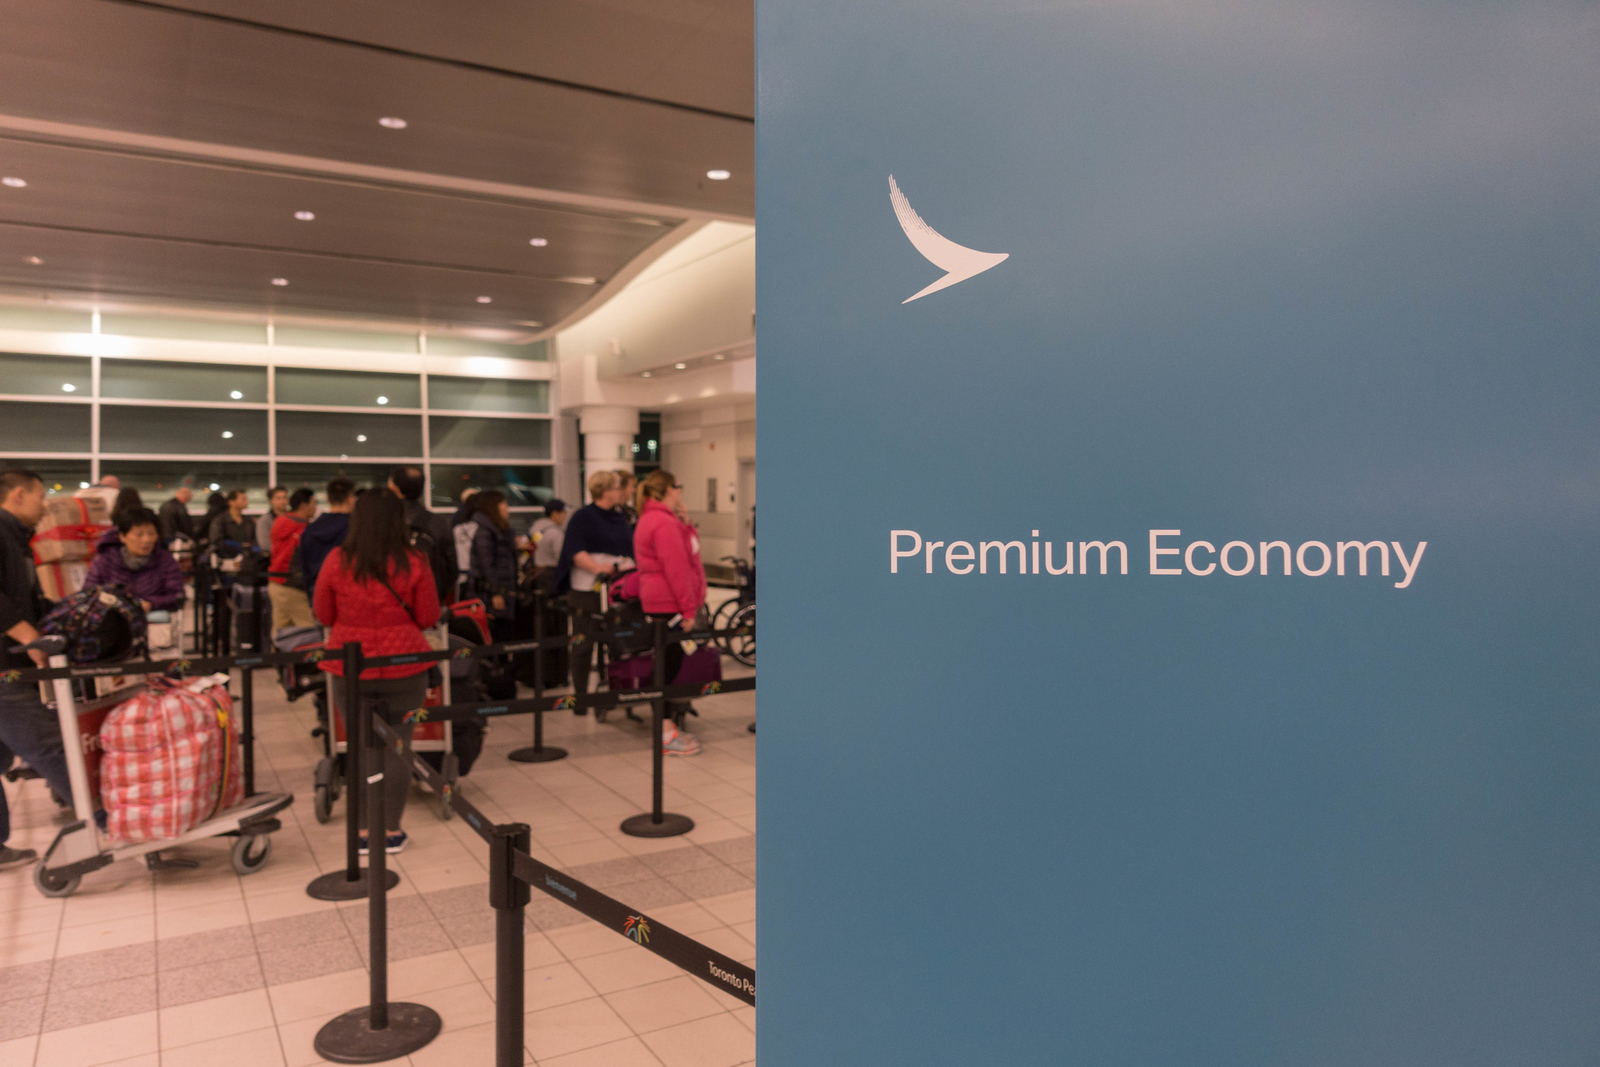 Cathay Pacific Premium Economy: Is it worth the cost to upgrade?